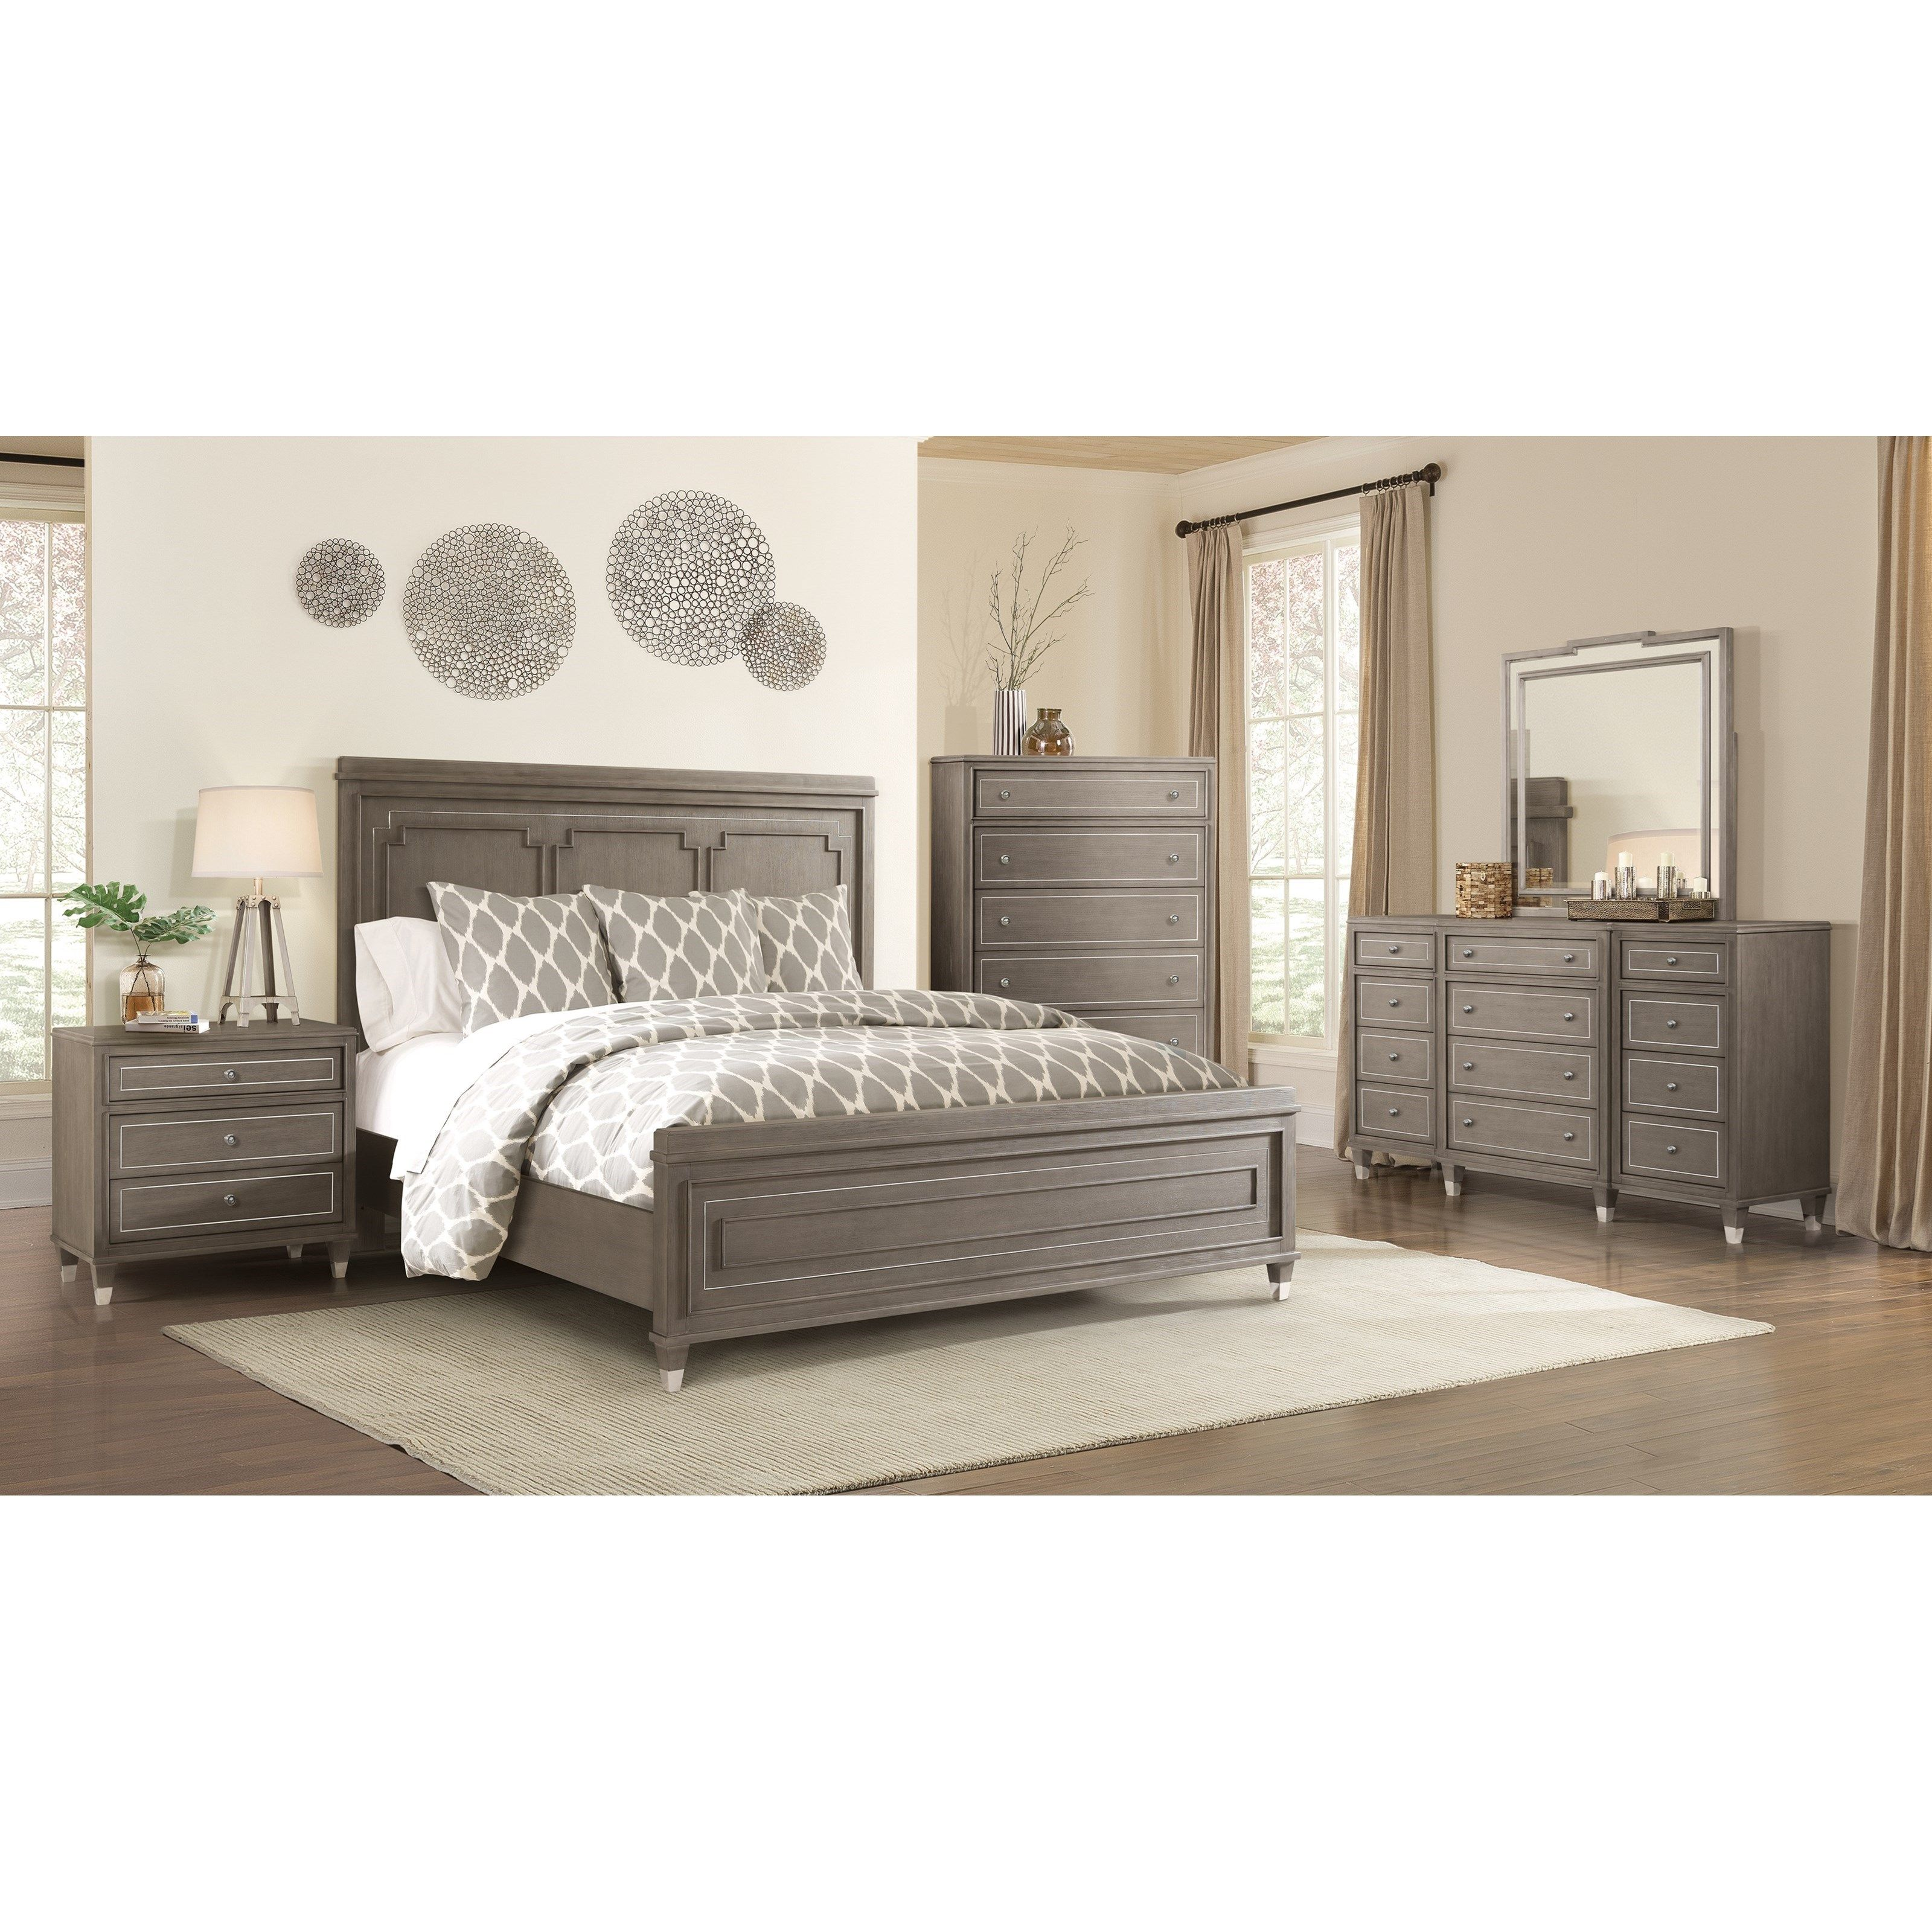 gallery belmeade furniture upholstered youtube bedroom home riverside bed sleigh by stores watch